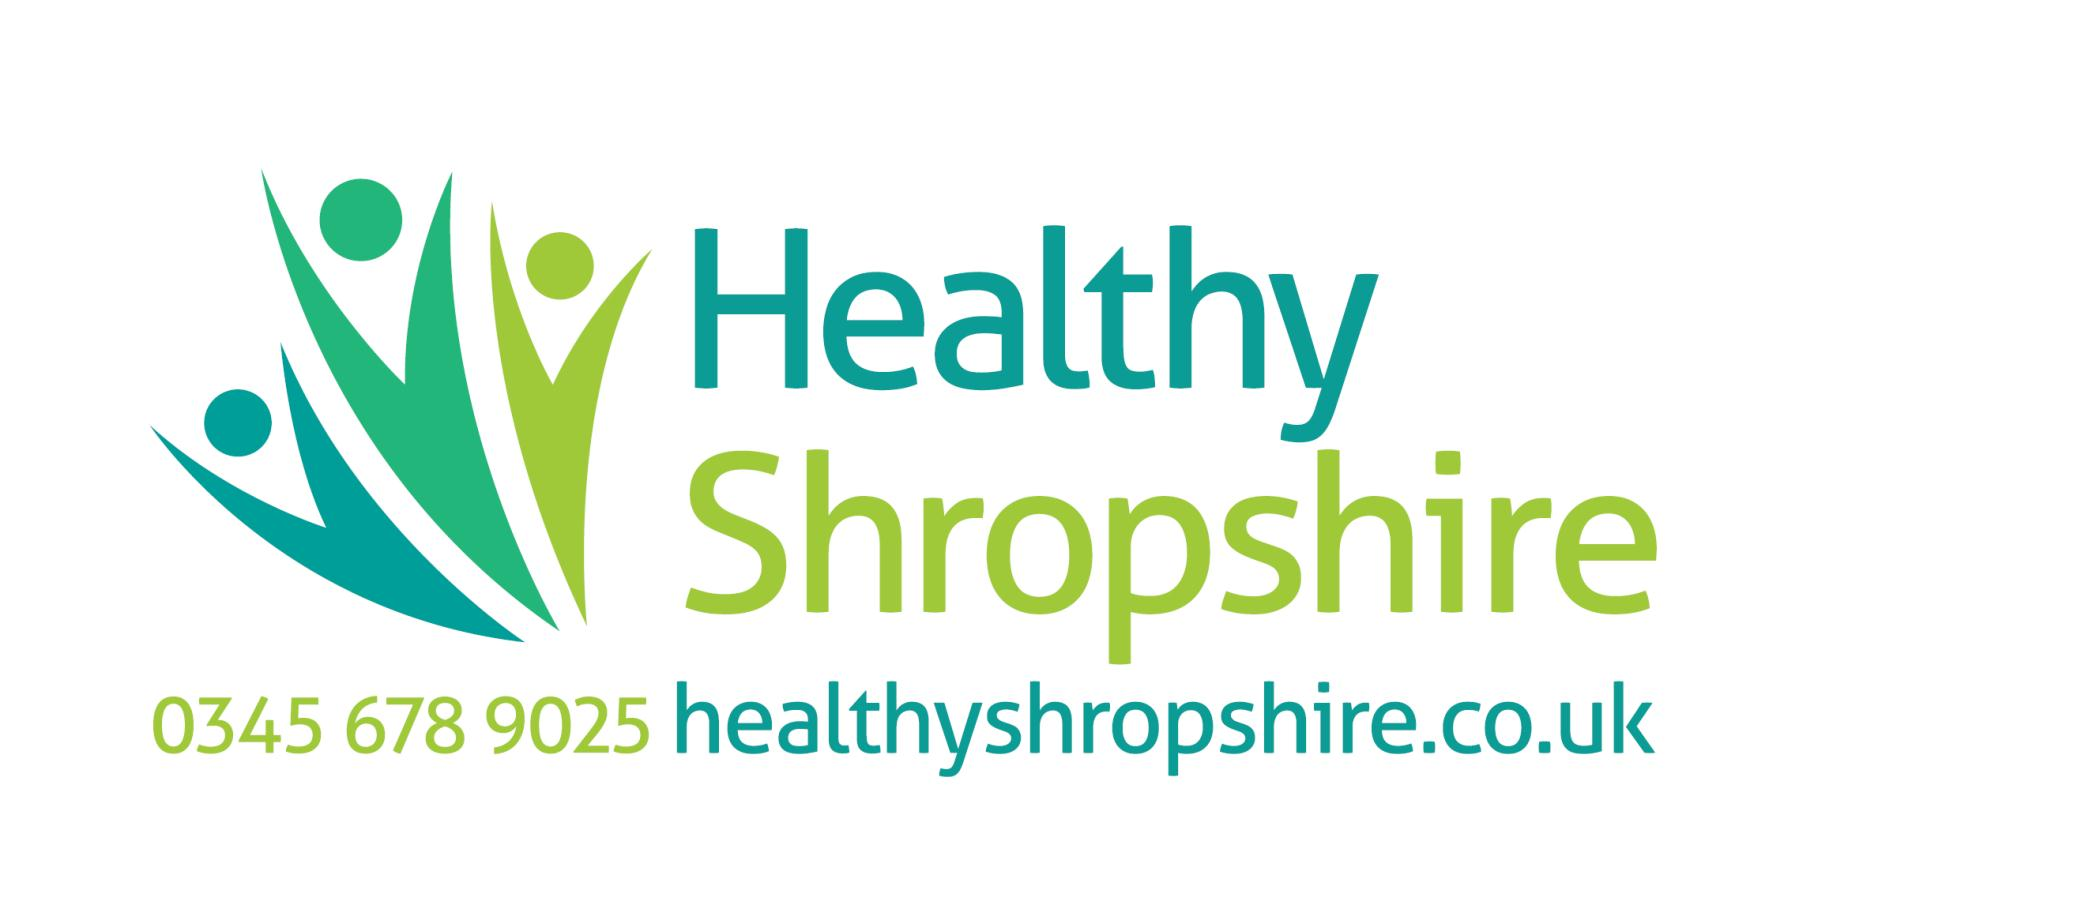 Healthy Shrop Logo with Tel Number